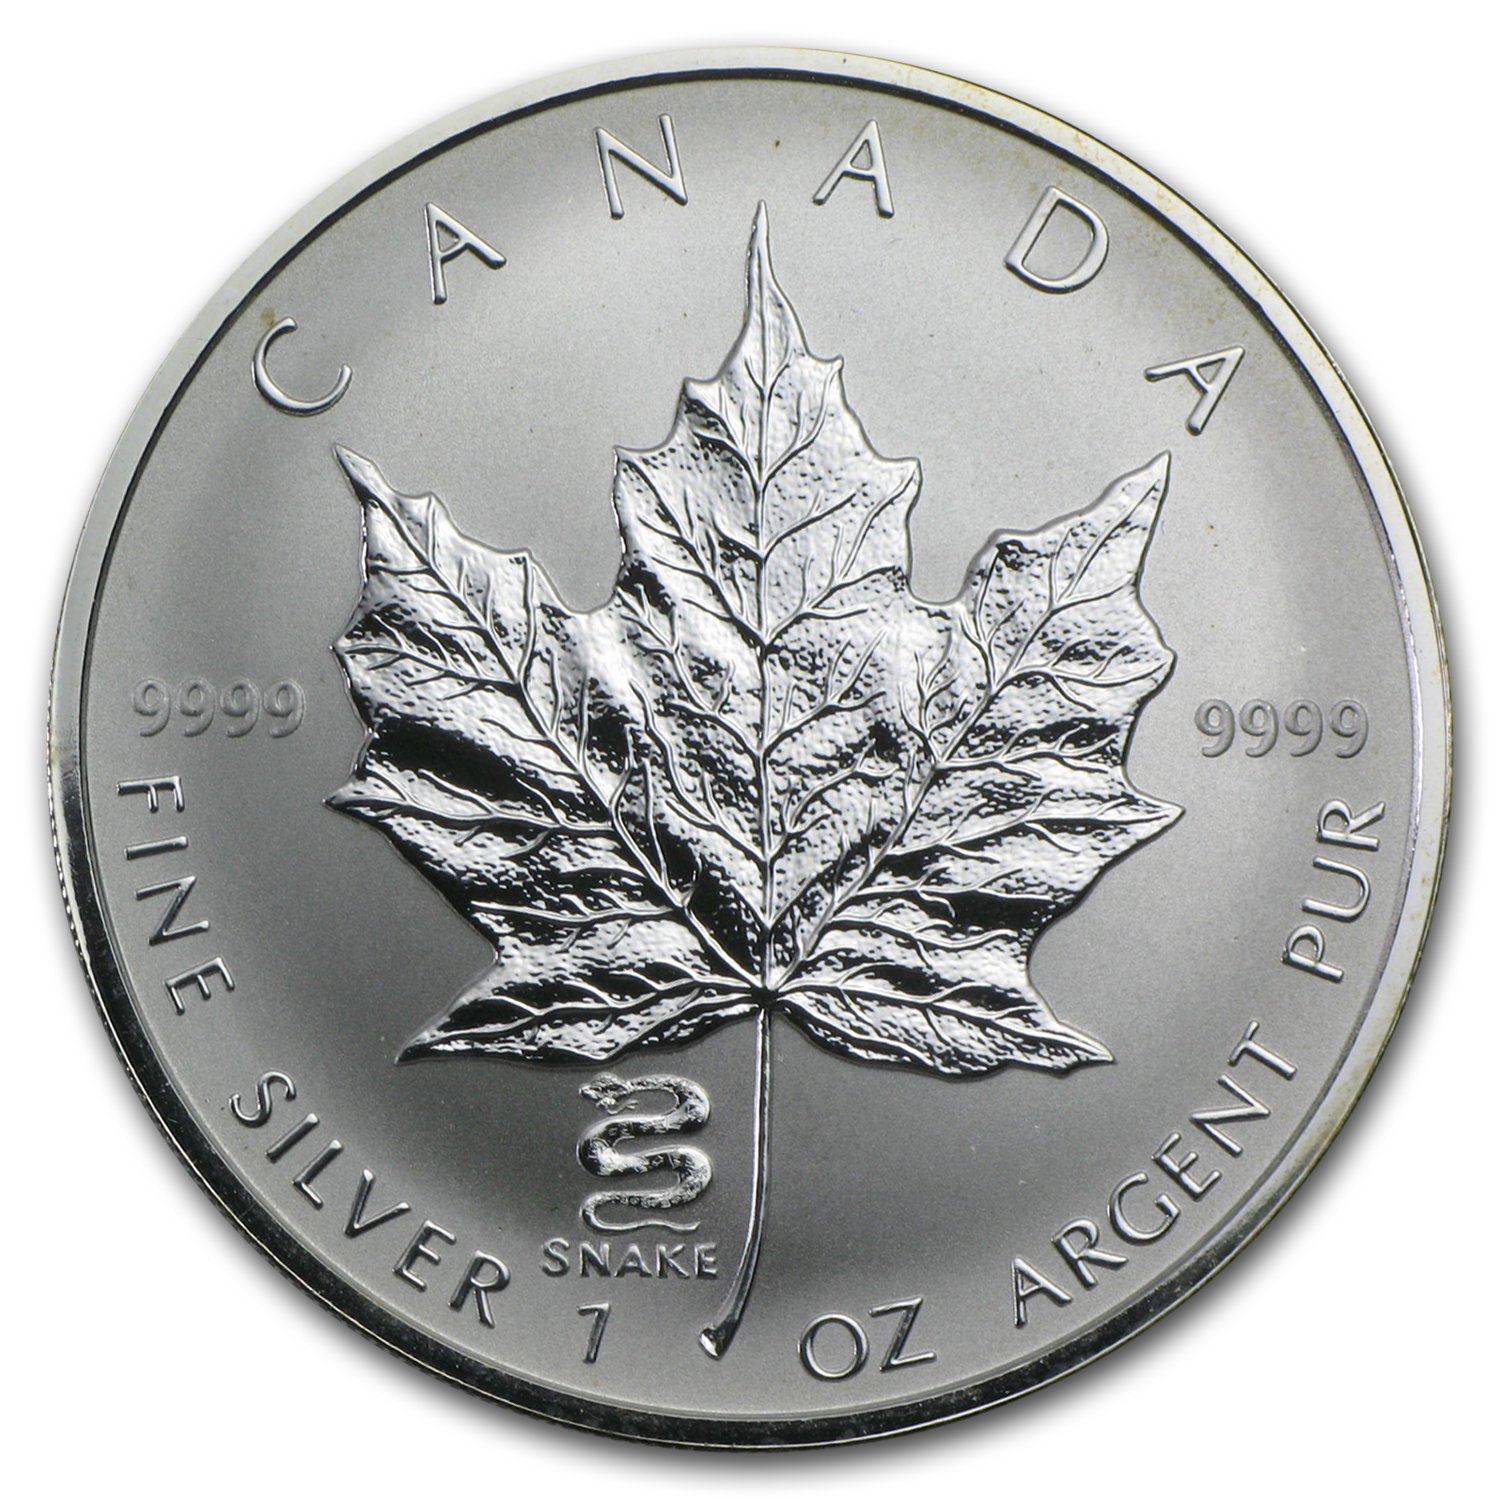 2001 1 oz Silver Canadian Maple Leaf - Lunar SNAKE Privy